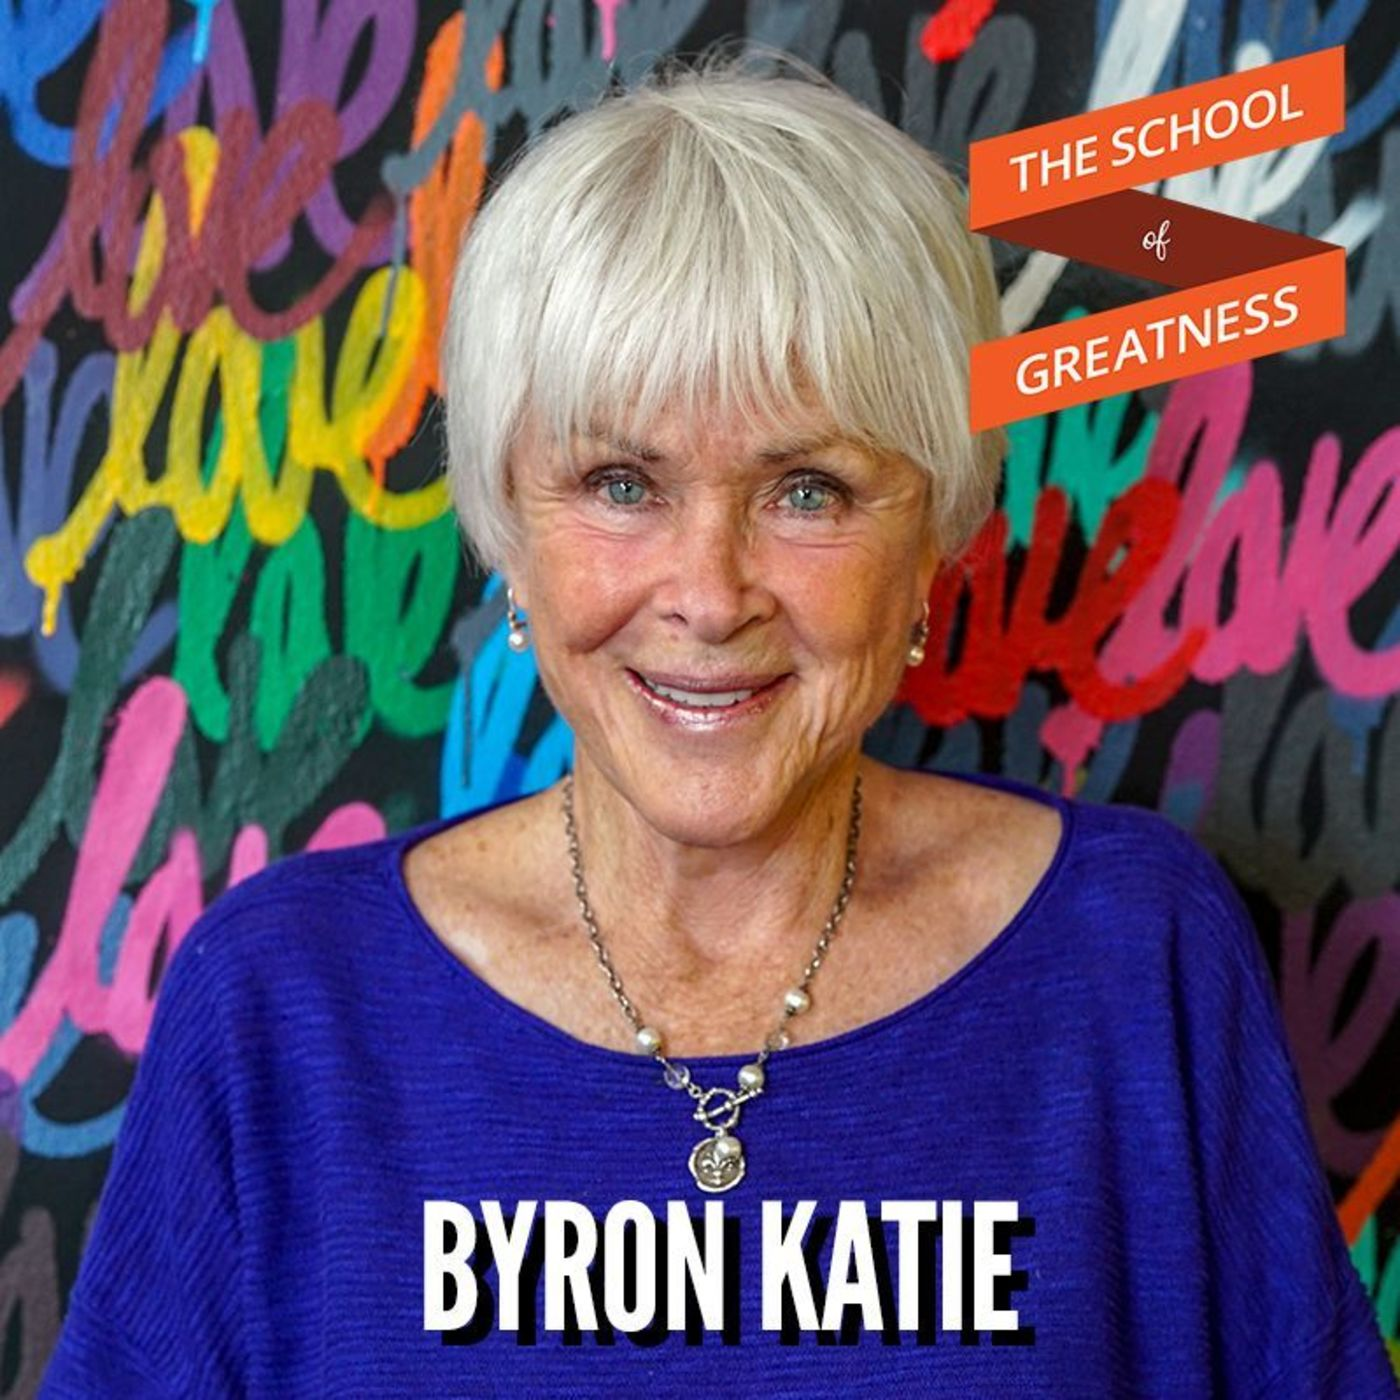 800 Byron Katie Enlightenment Is Within You